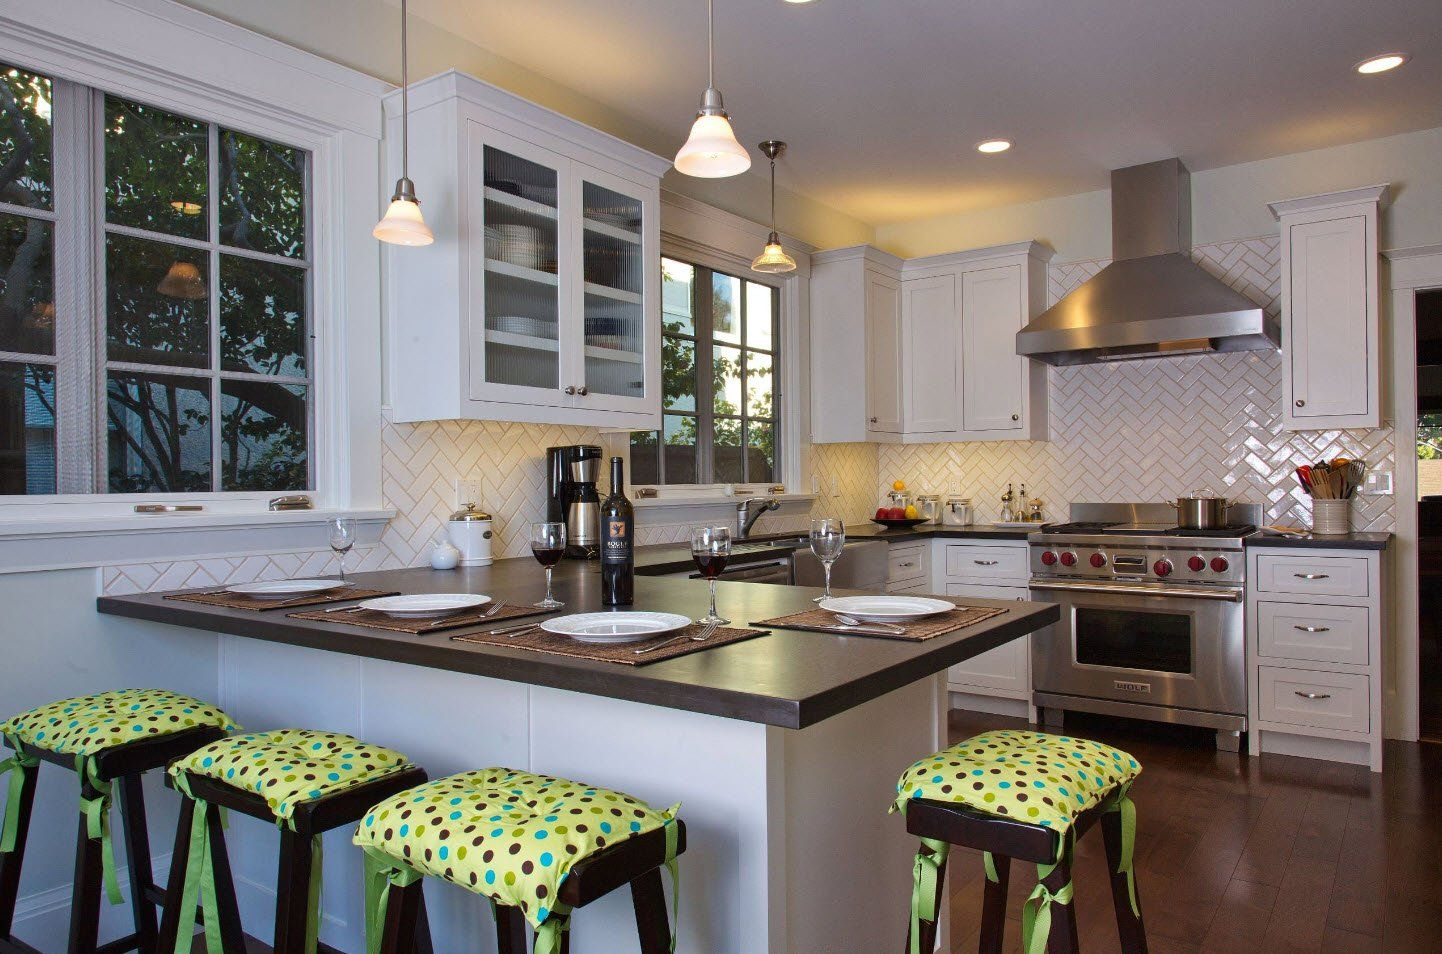 120 Square Feet Kitchen Interior Design Ideas with Photos. Classic white and black design with green cushions on the chairs